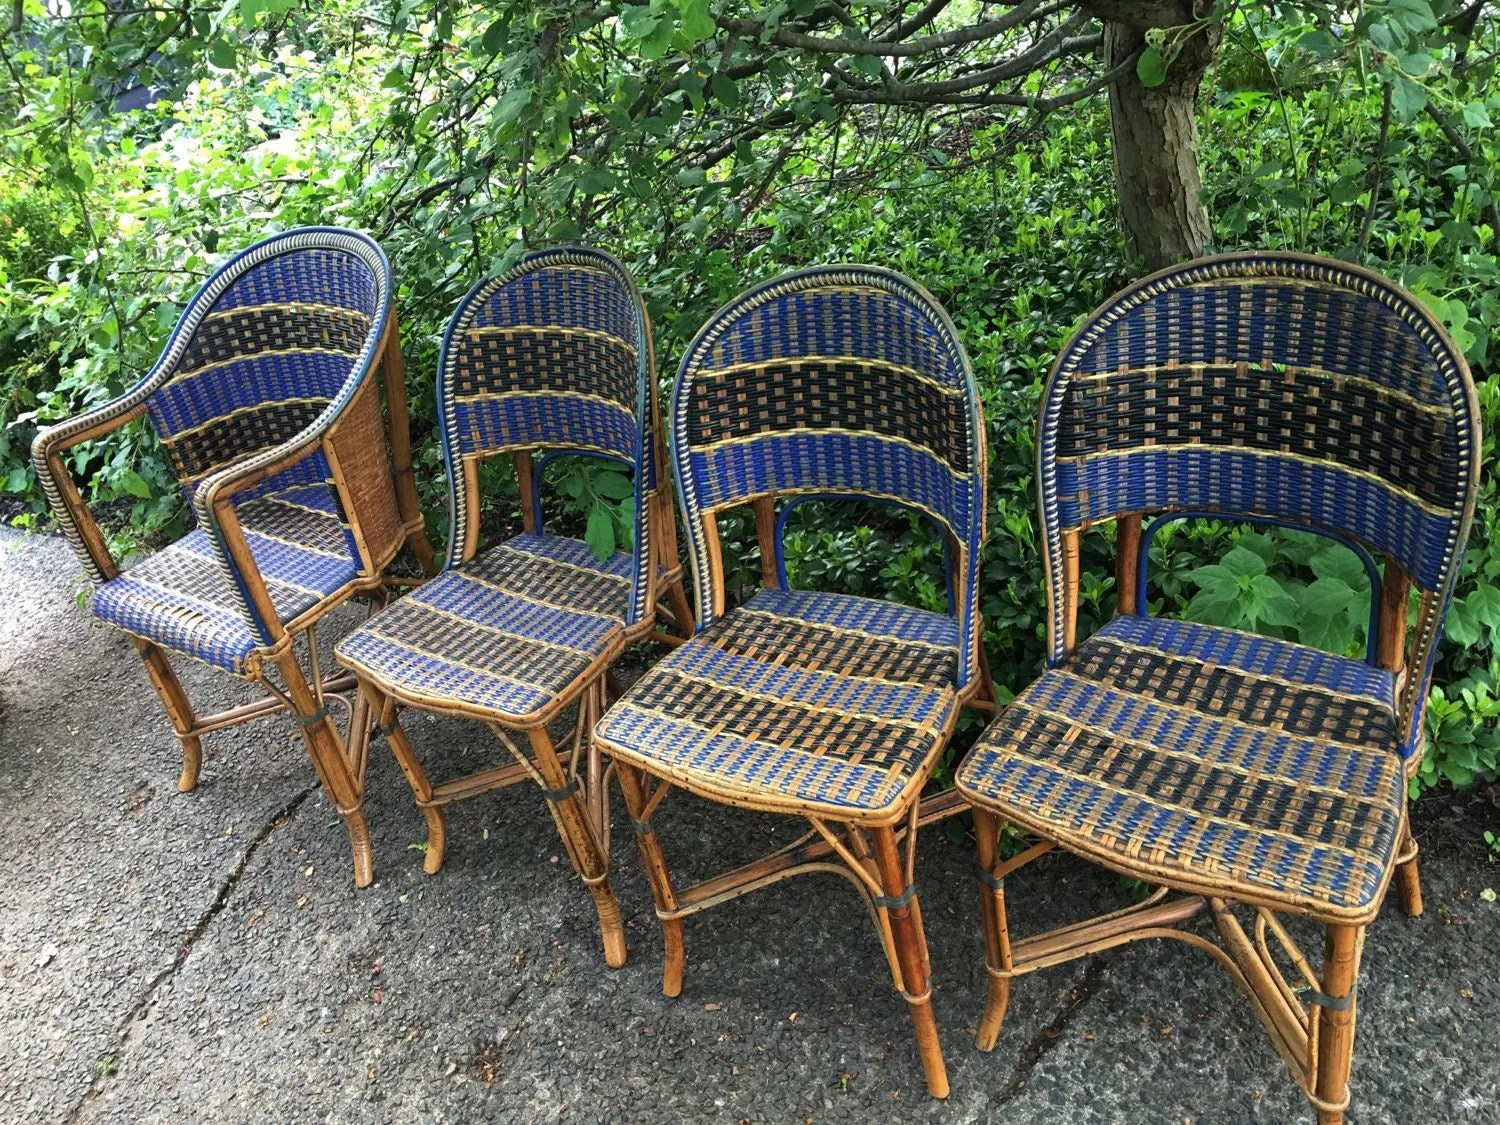 French Bistro Chair Antique French Bistro Rattan Chairs French Country Chairs